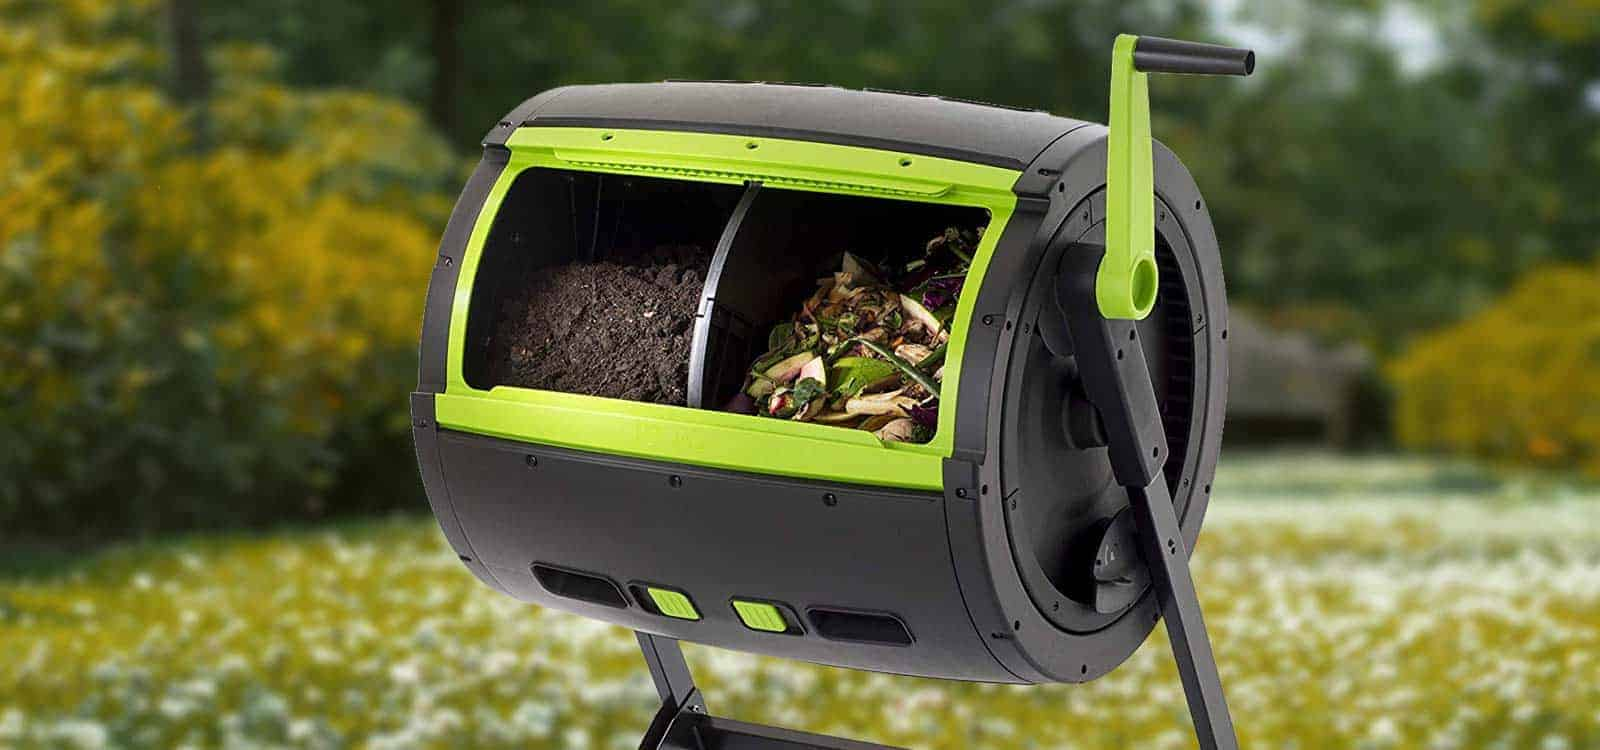 best-compost-bins-tumblers-worm-composting